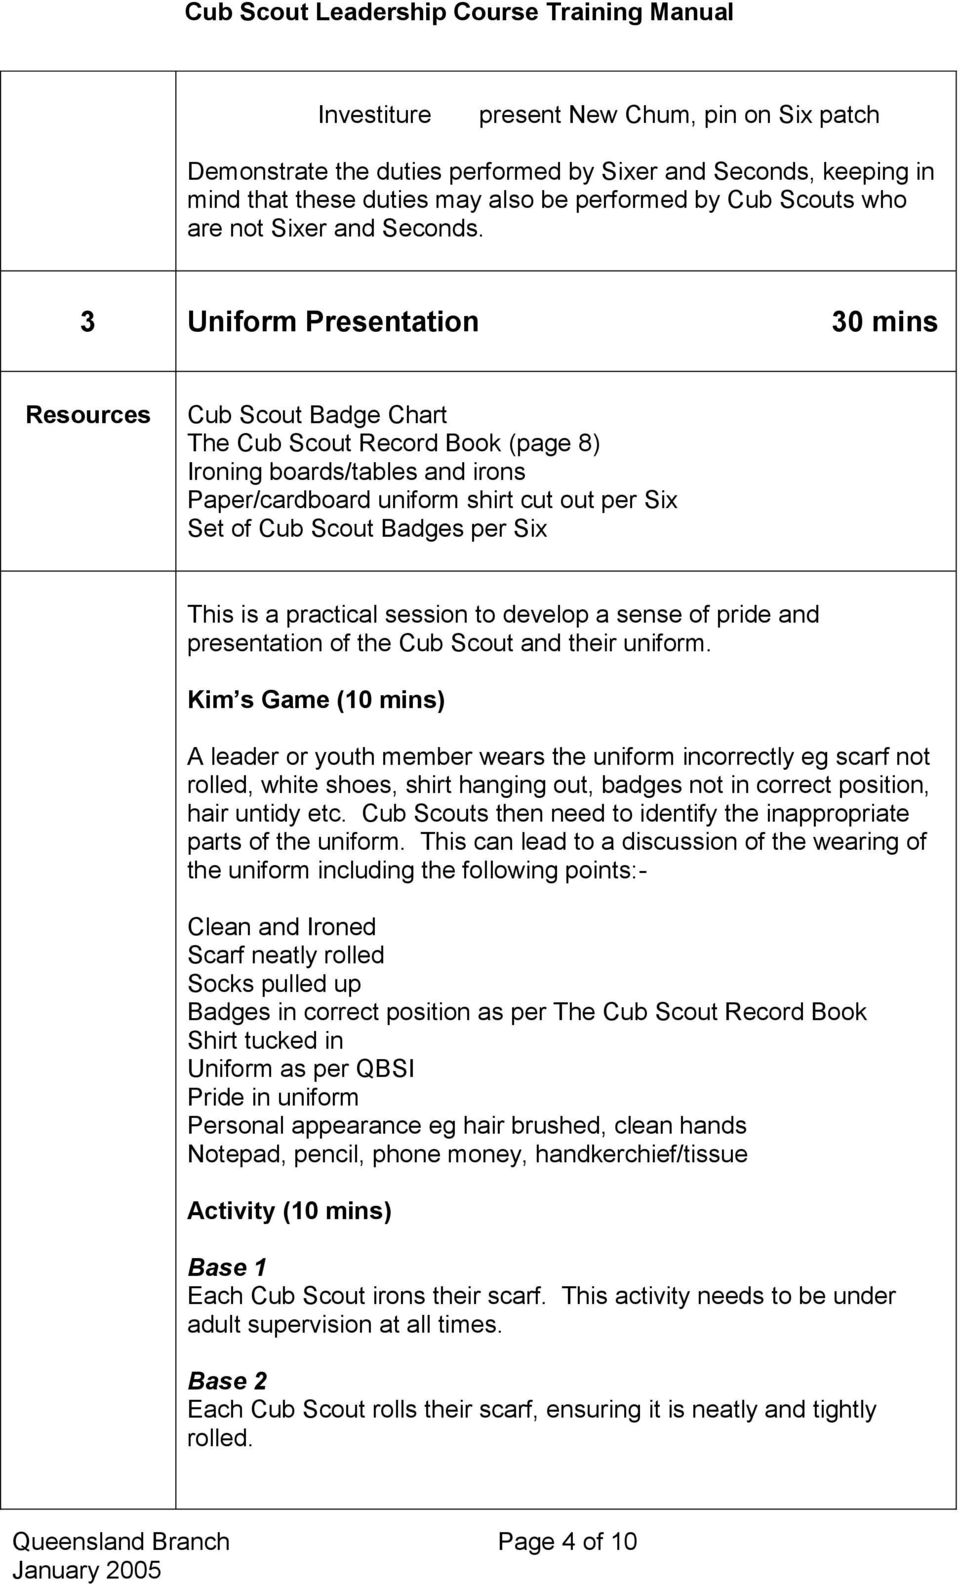 3 Uniform Presentation 30 mins Cub Scout Badge Chart The Cub Scout Record Book (page 8) Ironing boards/tables and irons Paper/cardboard uniform shirt cut out per Six Set of Cub Scout Badges per Six